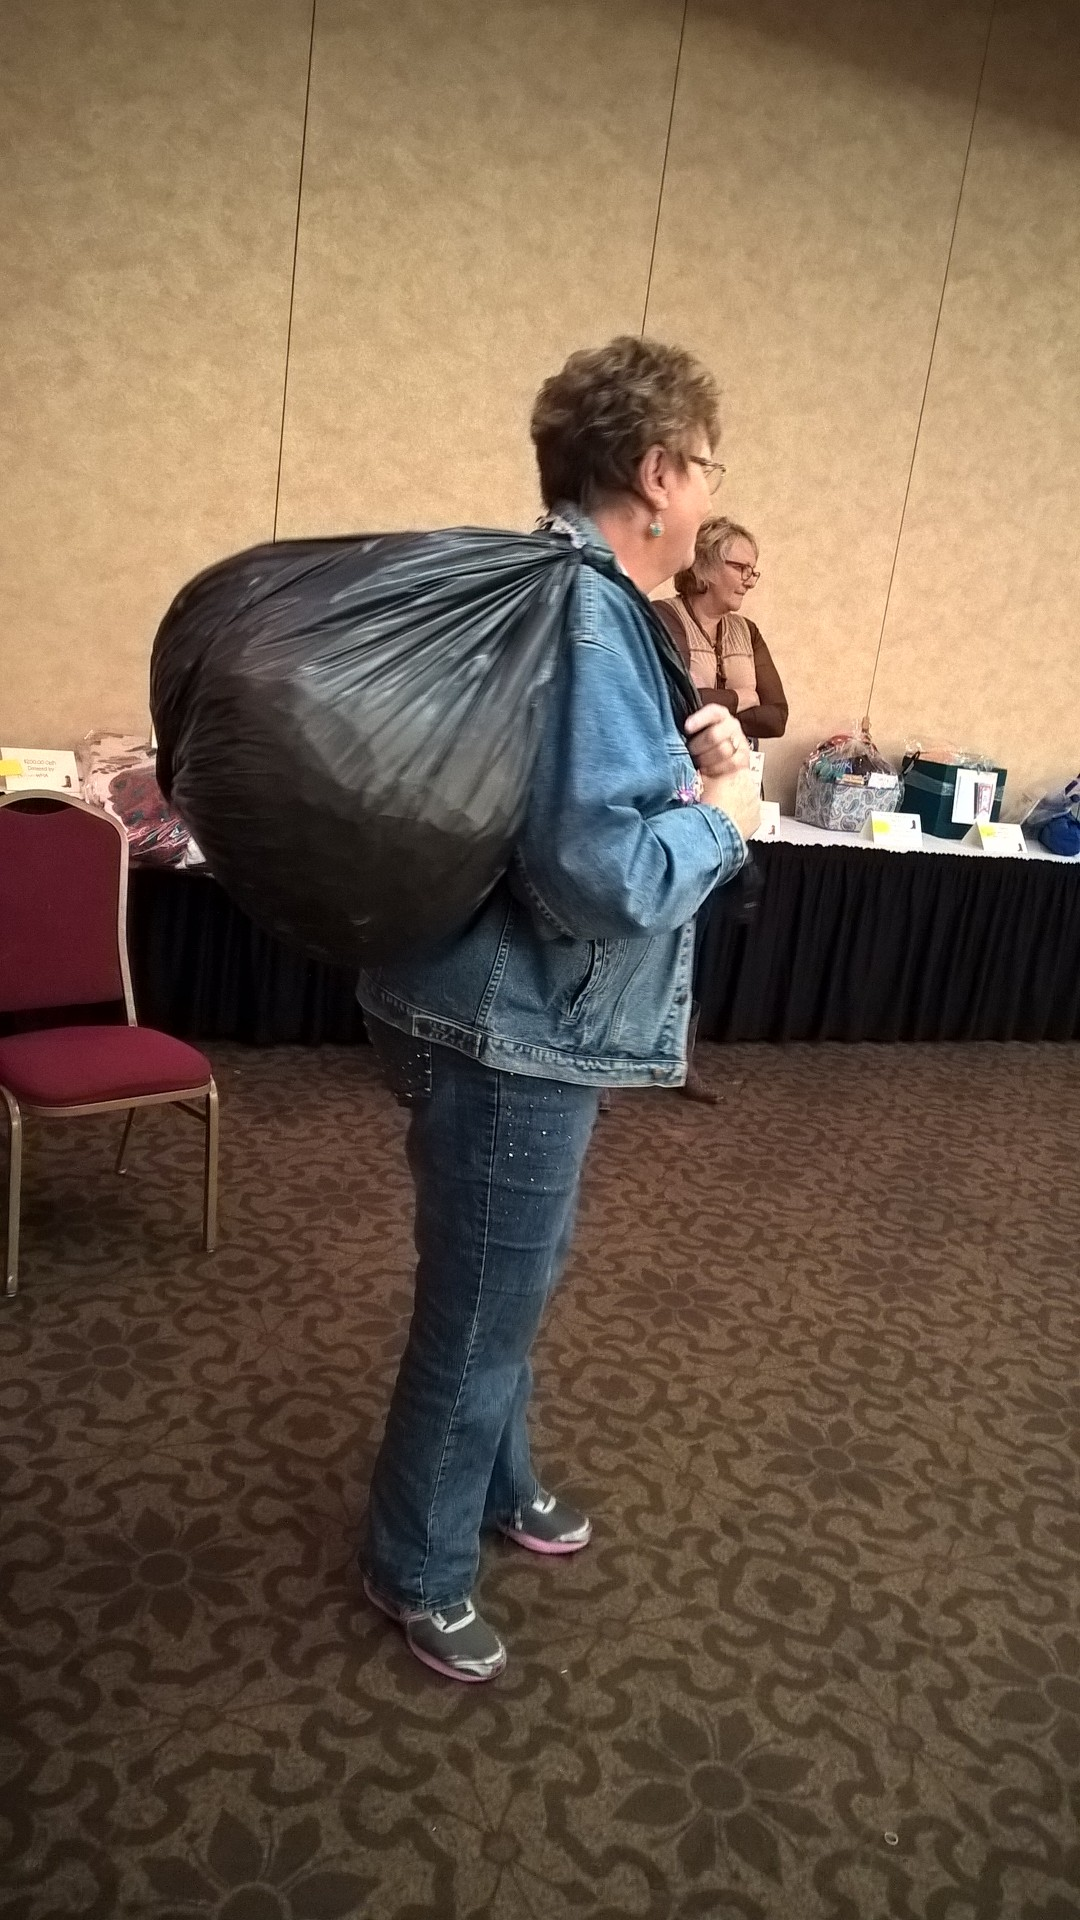 Gayle and her raffle ticket sack!